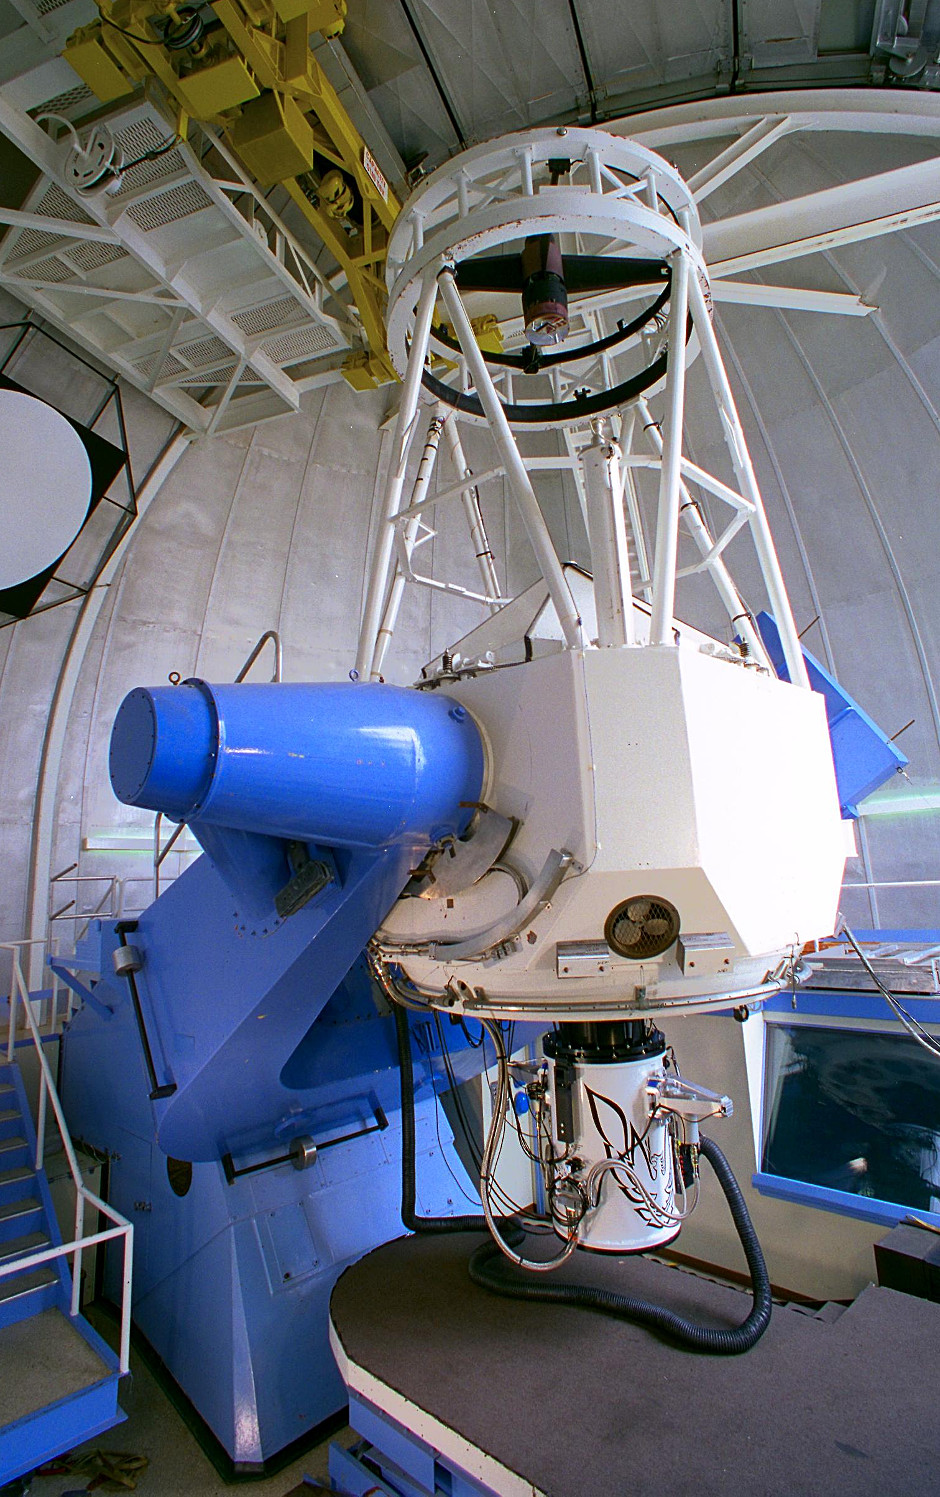 Constructed in the early 1960s and seeing first light on 15September 1964, the Kitt Peak National Observatory 2.1-metre telescope was one of the earliest Kitt Peak telescopes. The Robo-AOKP adaptive optics system will be transferred to the instrument later this year to support long-term observing projects. Image credit: KPNO/NOAO/AURA/NSF.